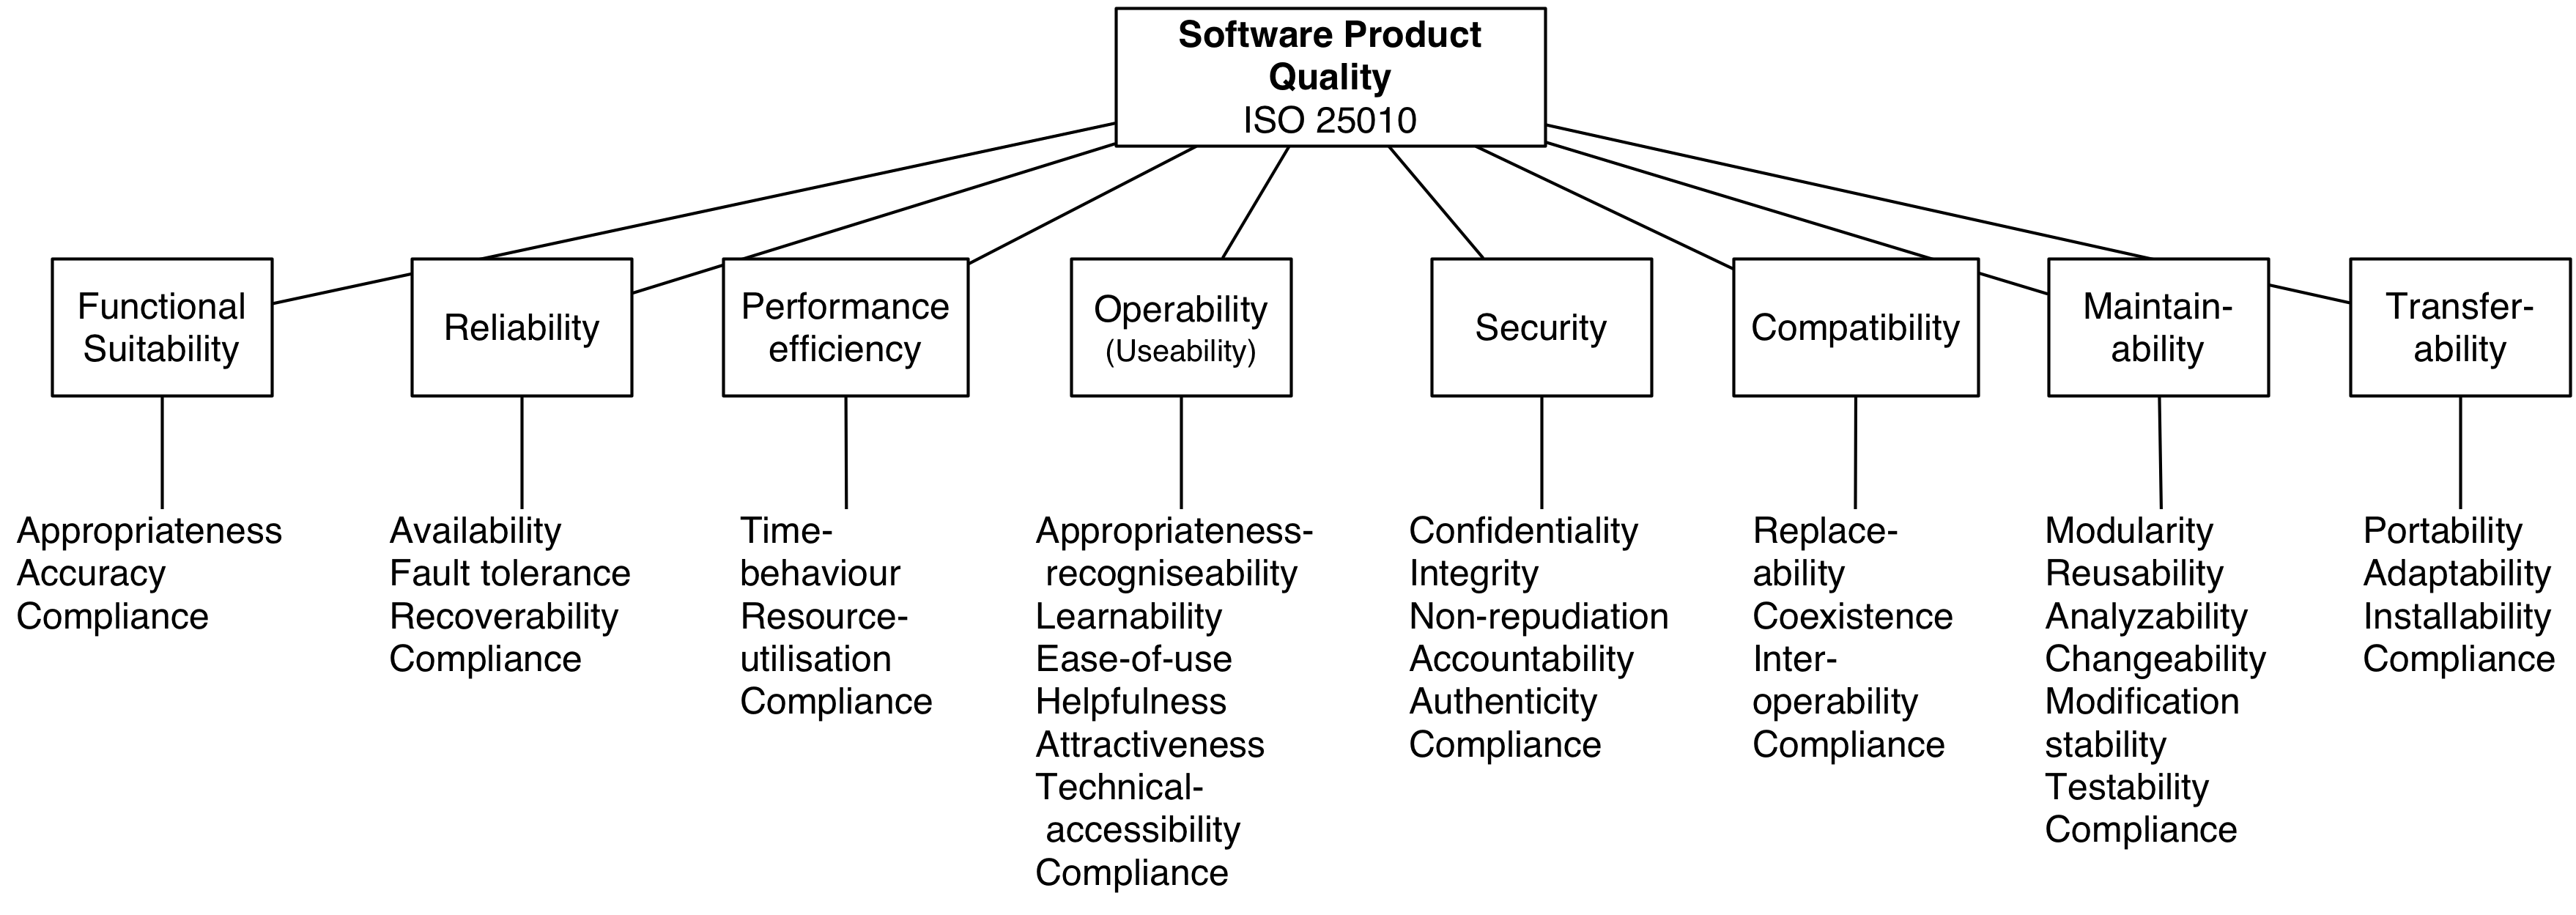 ISO 25010 Software Product Quality Tree